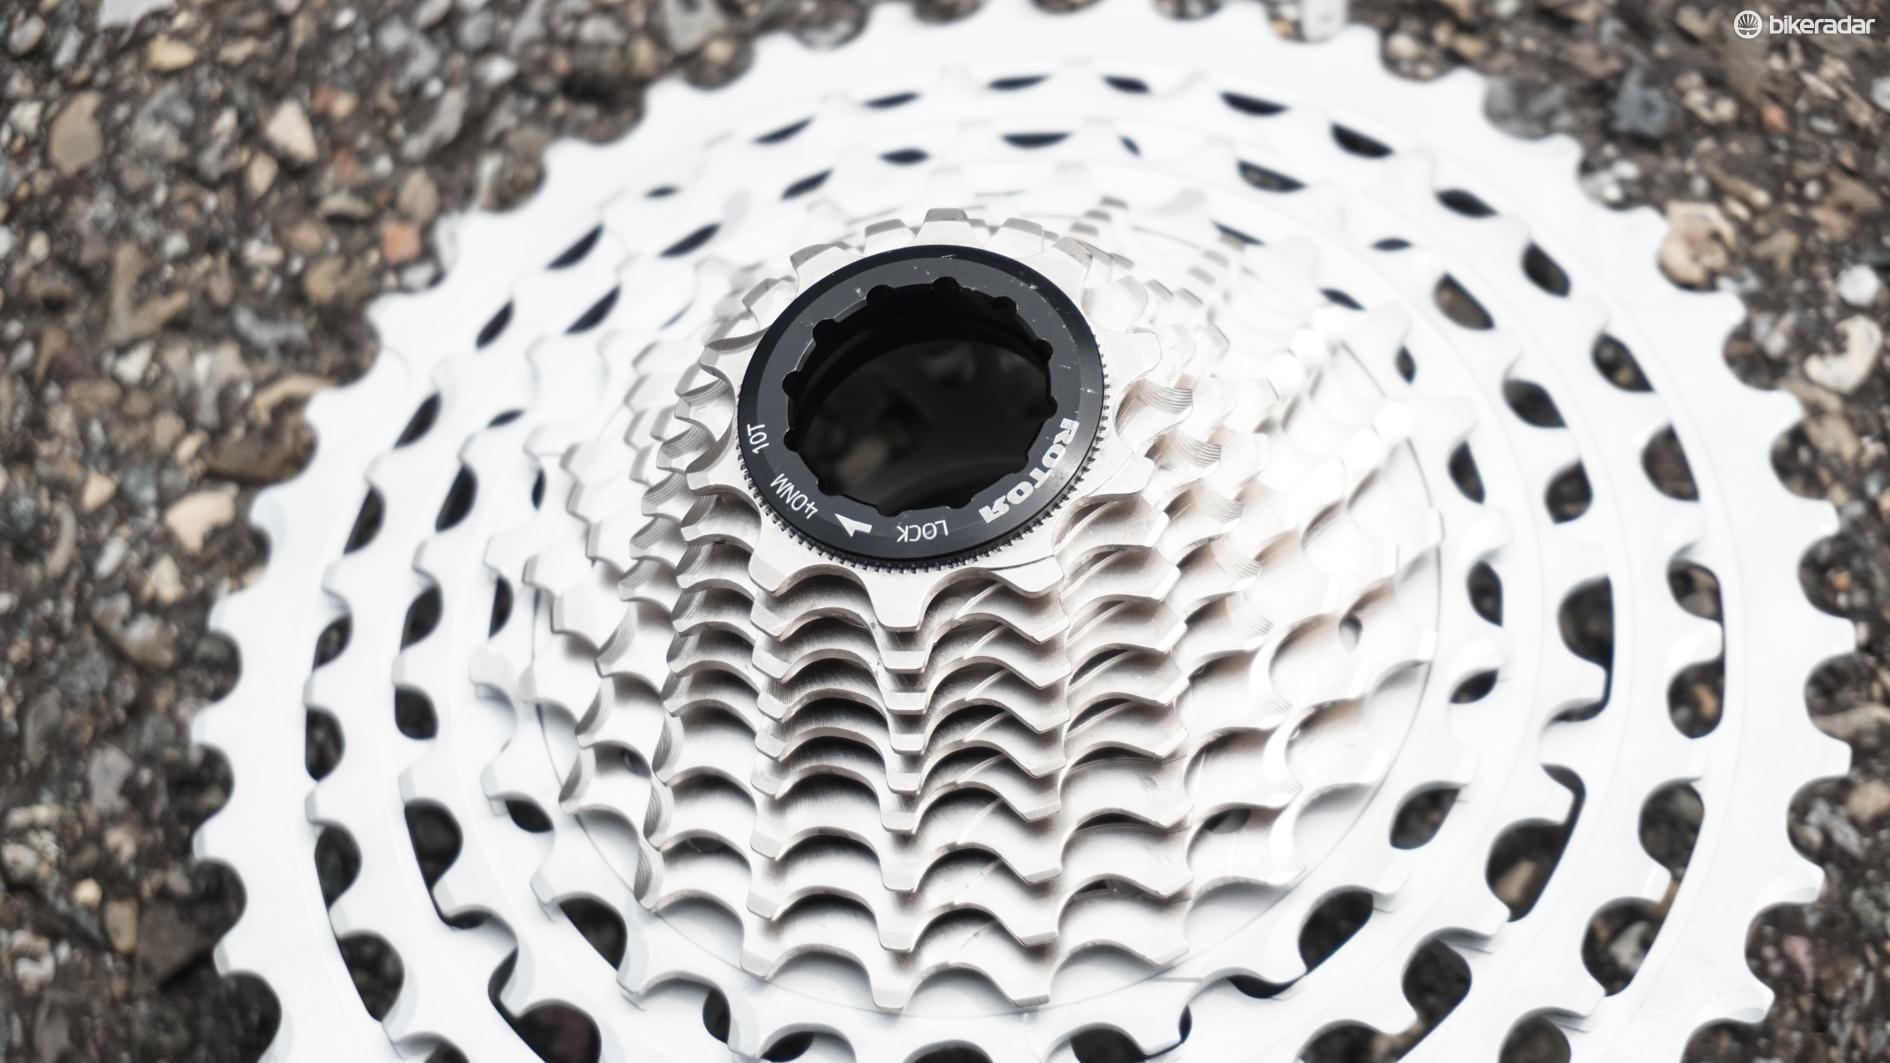 The 10t cog sits outboard of the end of the freehub